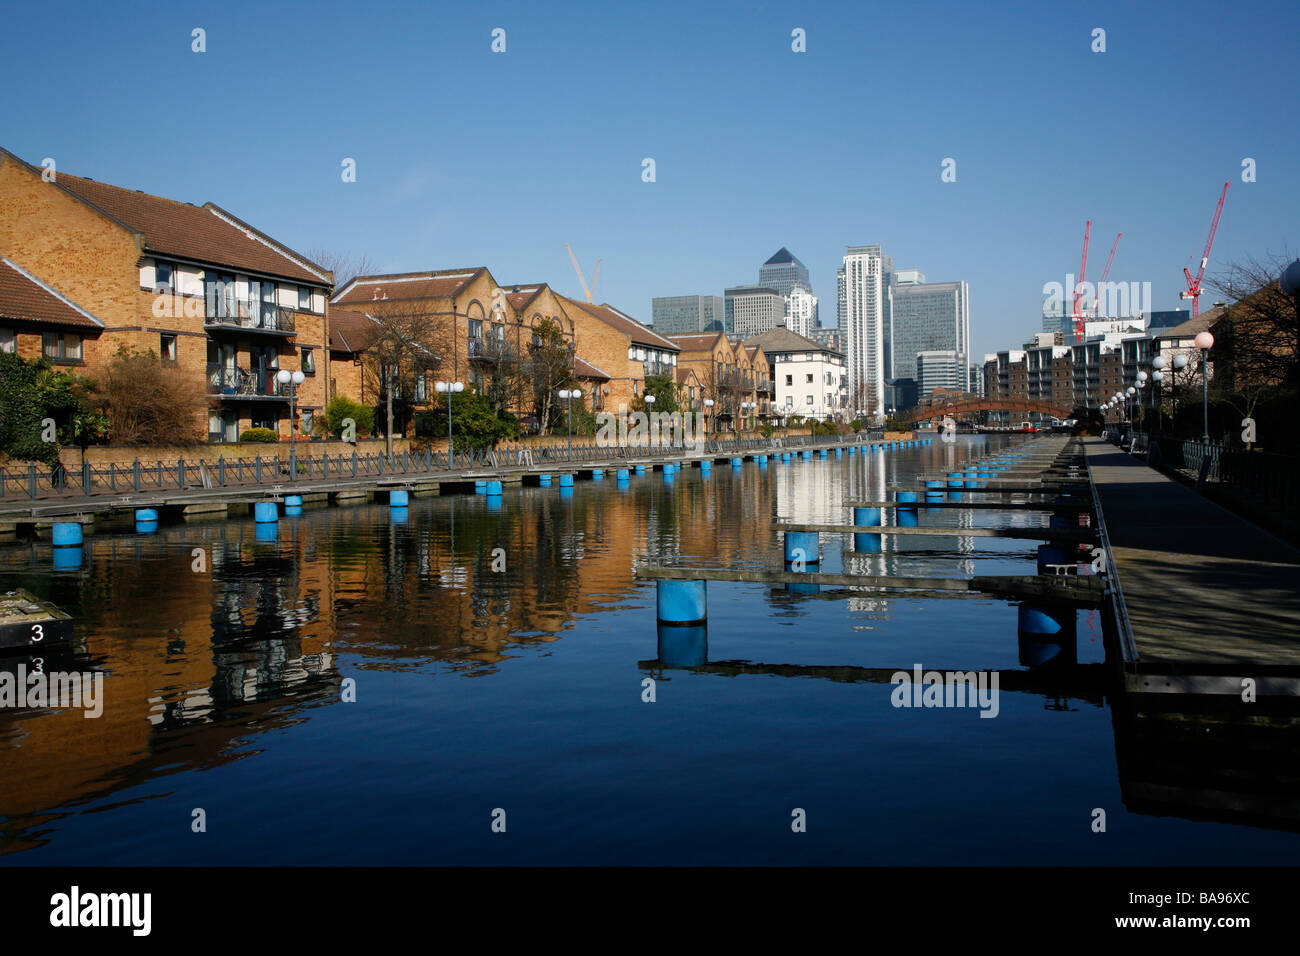 View of Canary Wharf from Millwall Outer Dock, Millwall, Isle of Dogs, London, UK - Stock Image